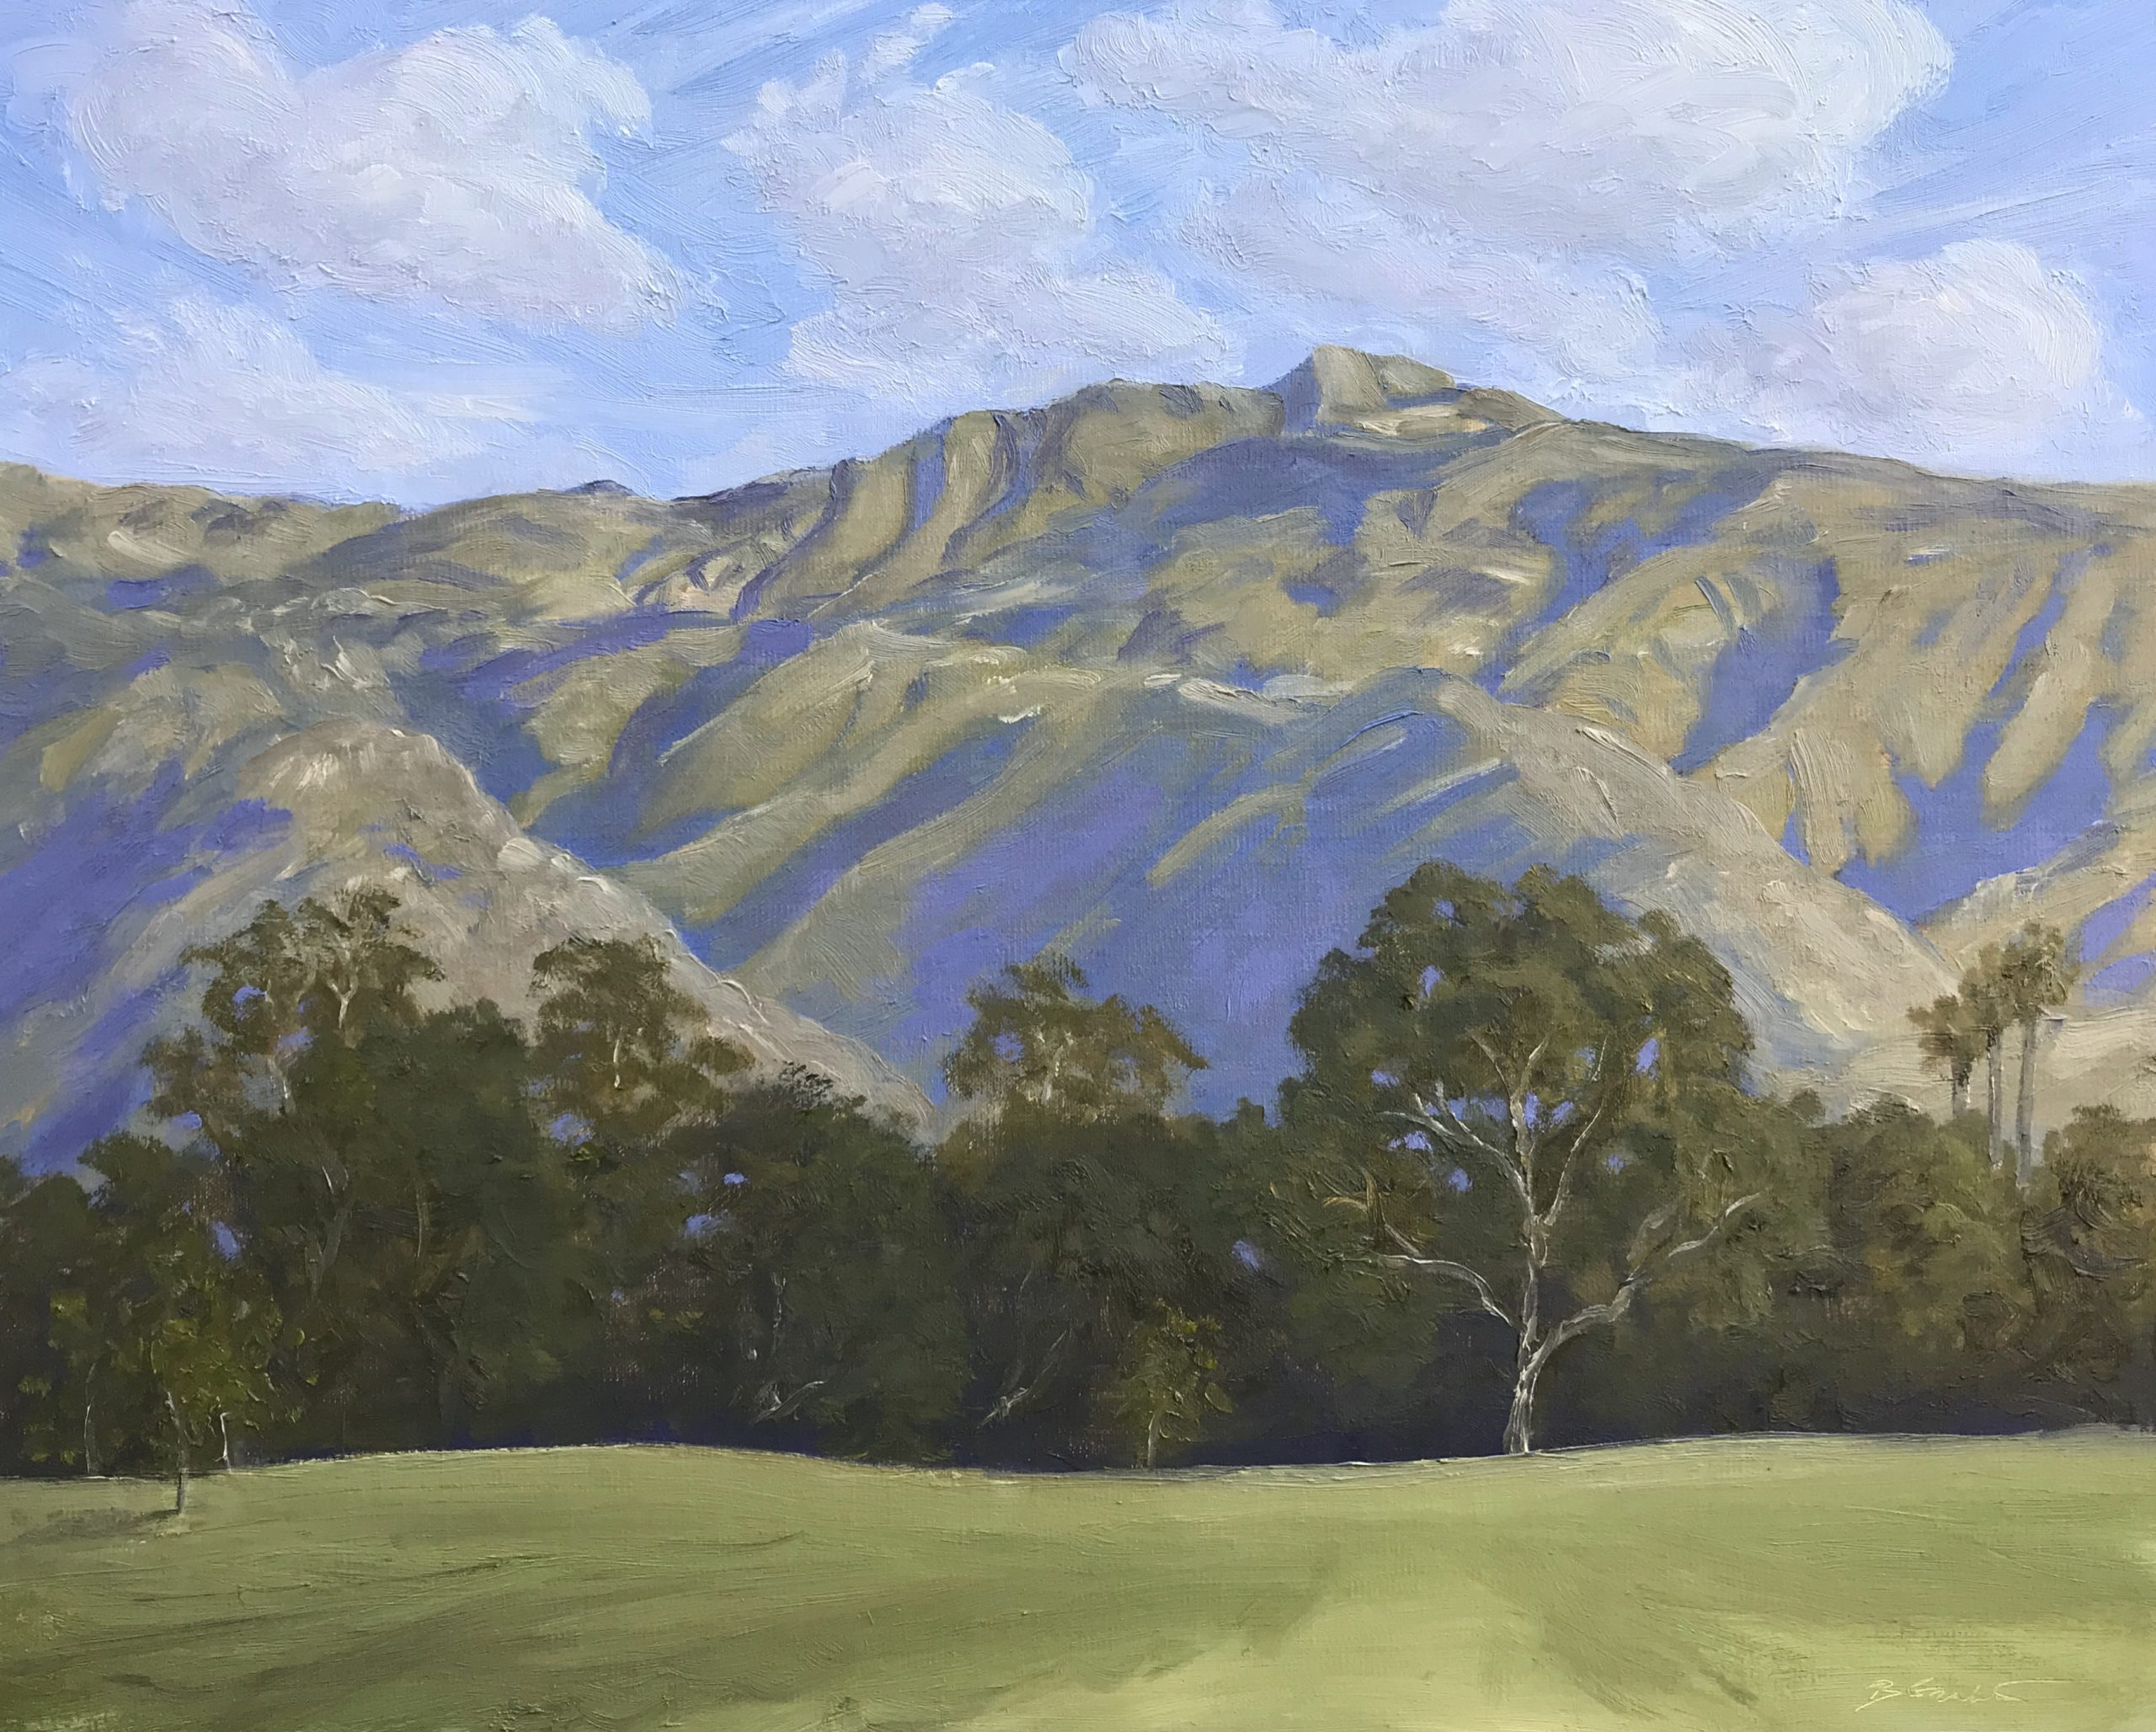 Grabin-Bruce_Chief's Peak from Soule Park Golf Course-Oil-16x20